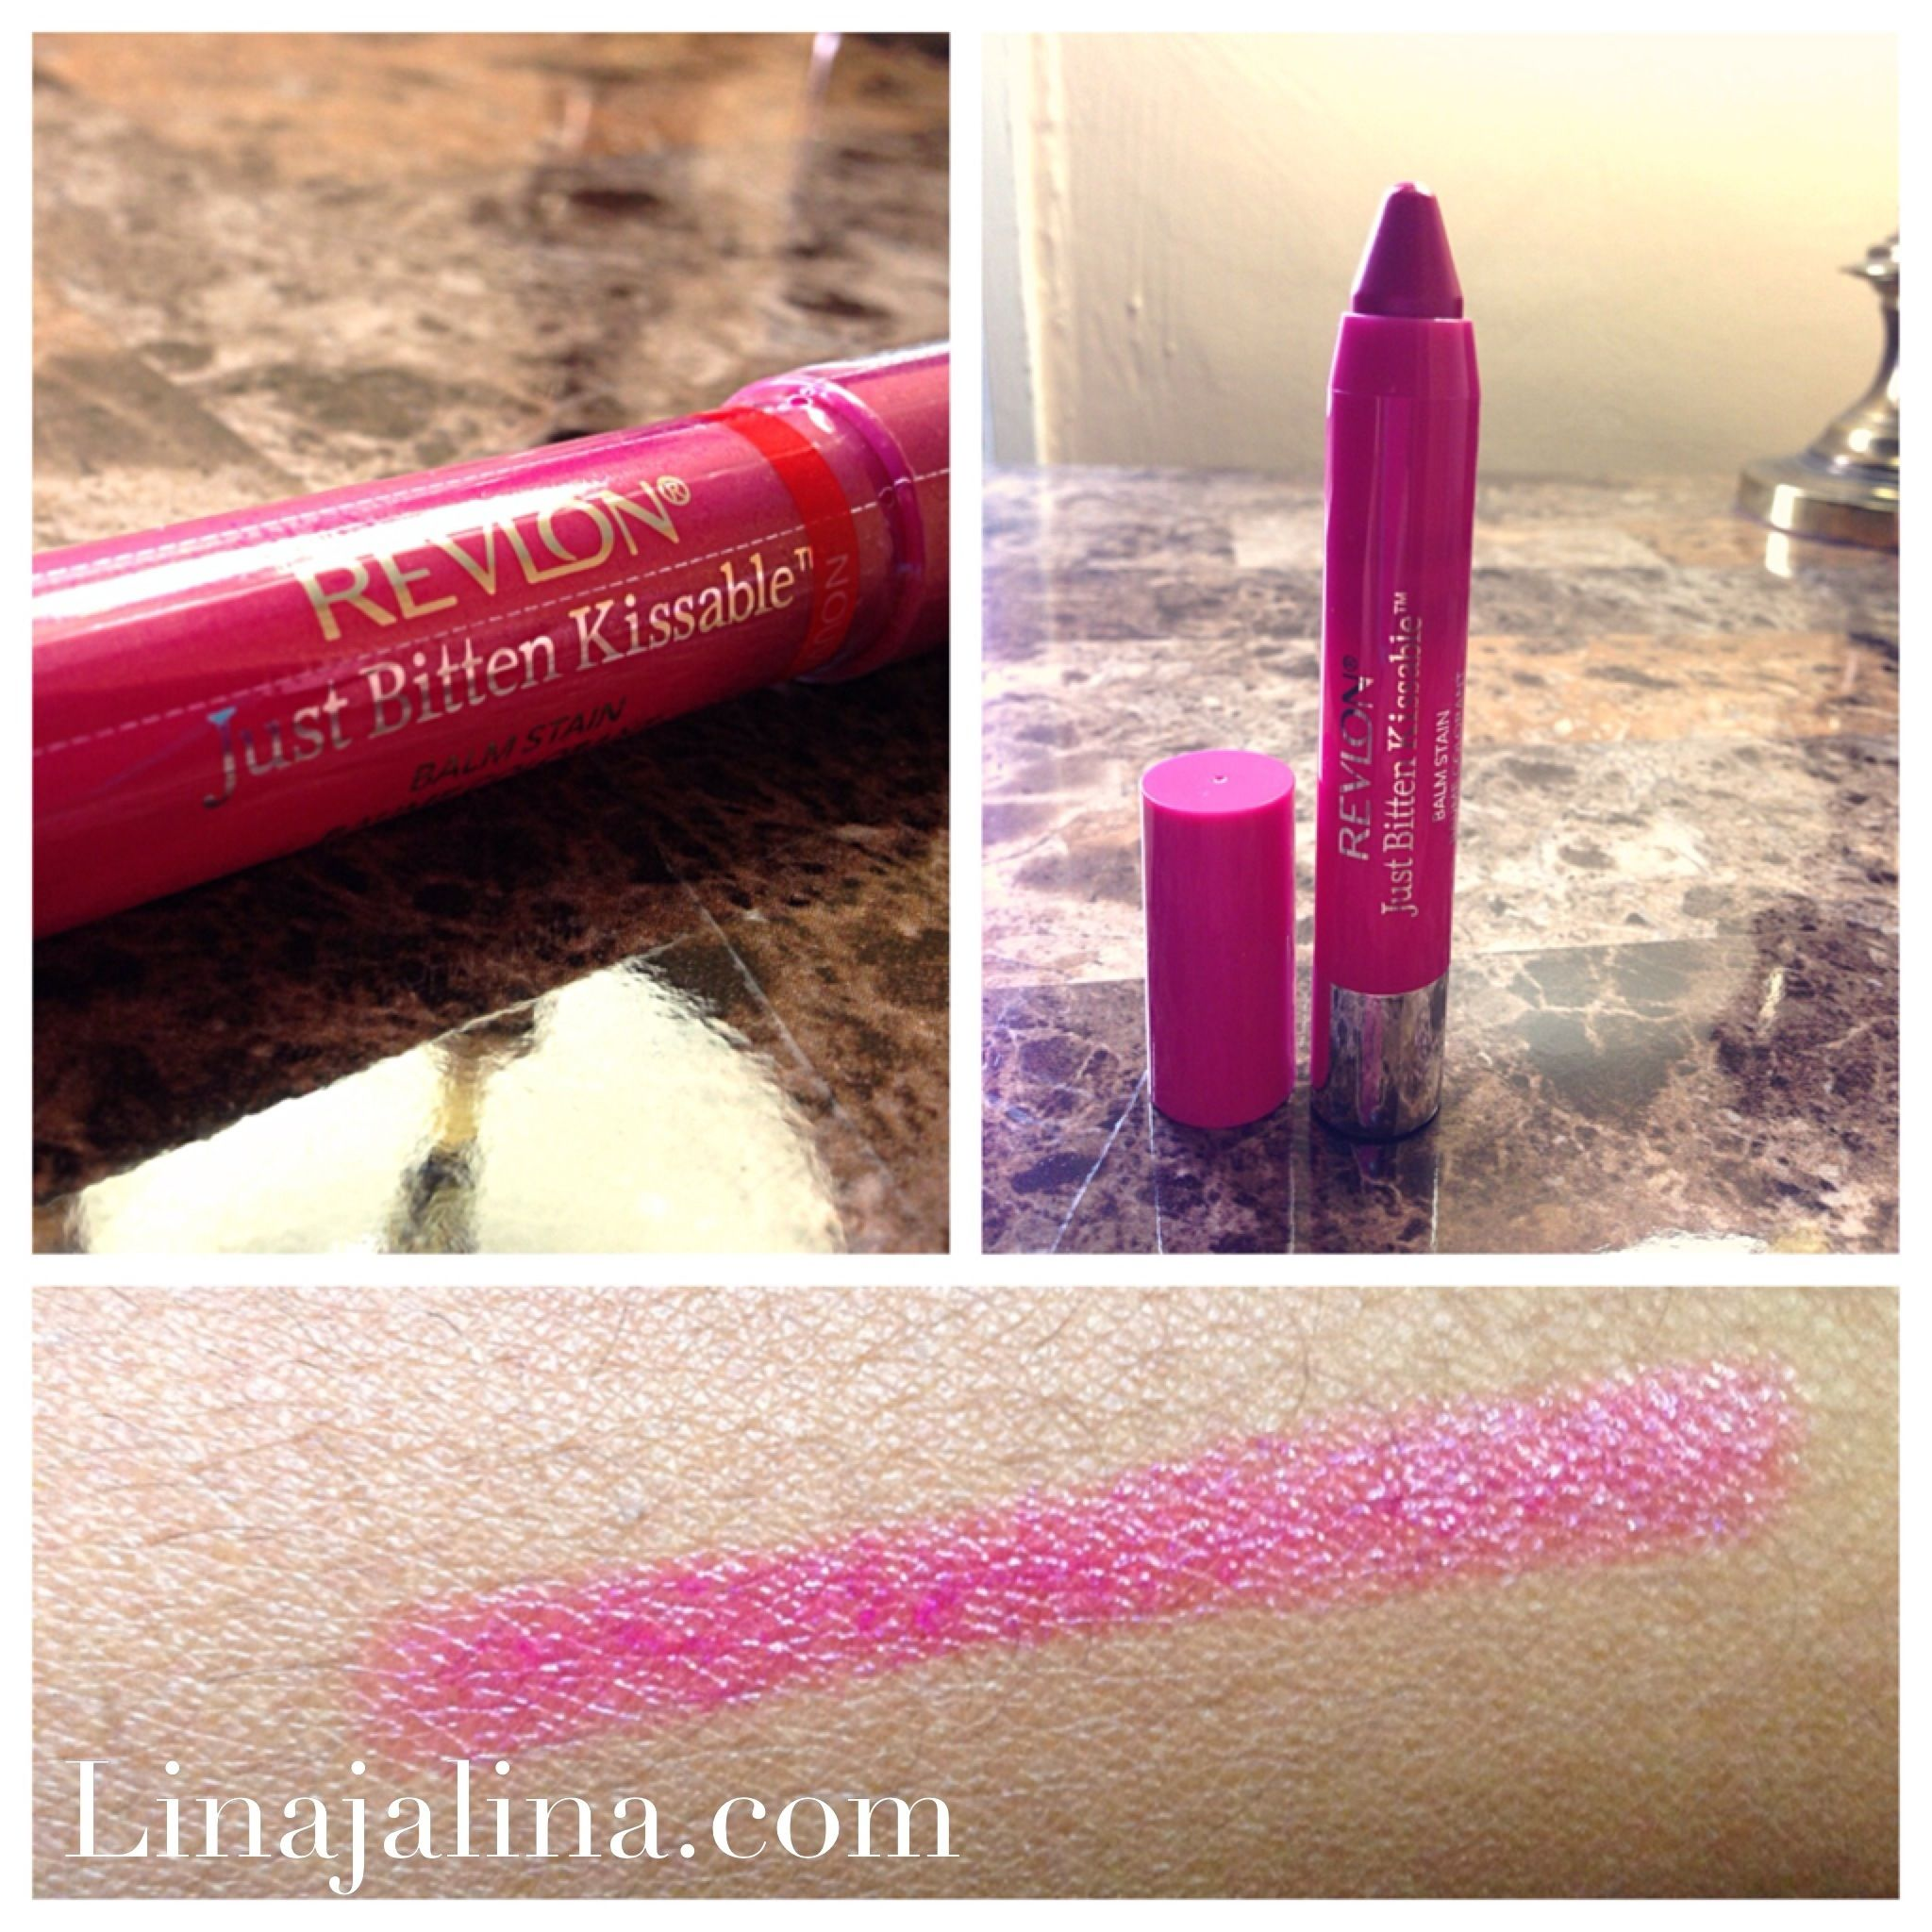 My fav lip stains by Revlon just bitten kissable  Linajalina.com  #revlon #justbitten #lipstains #blogger #linajalina